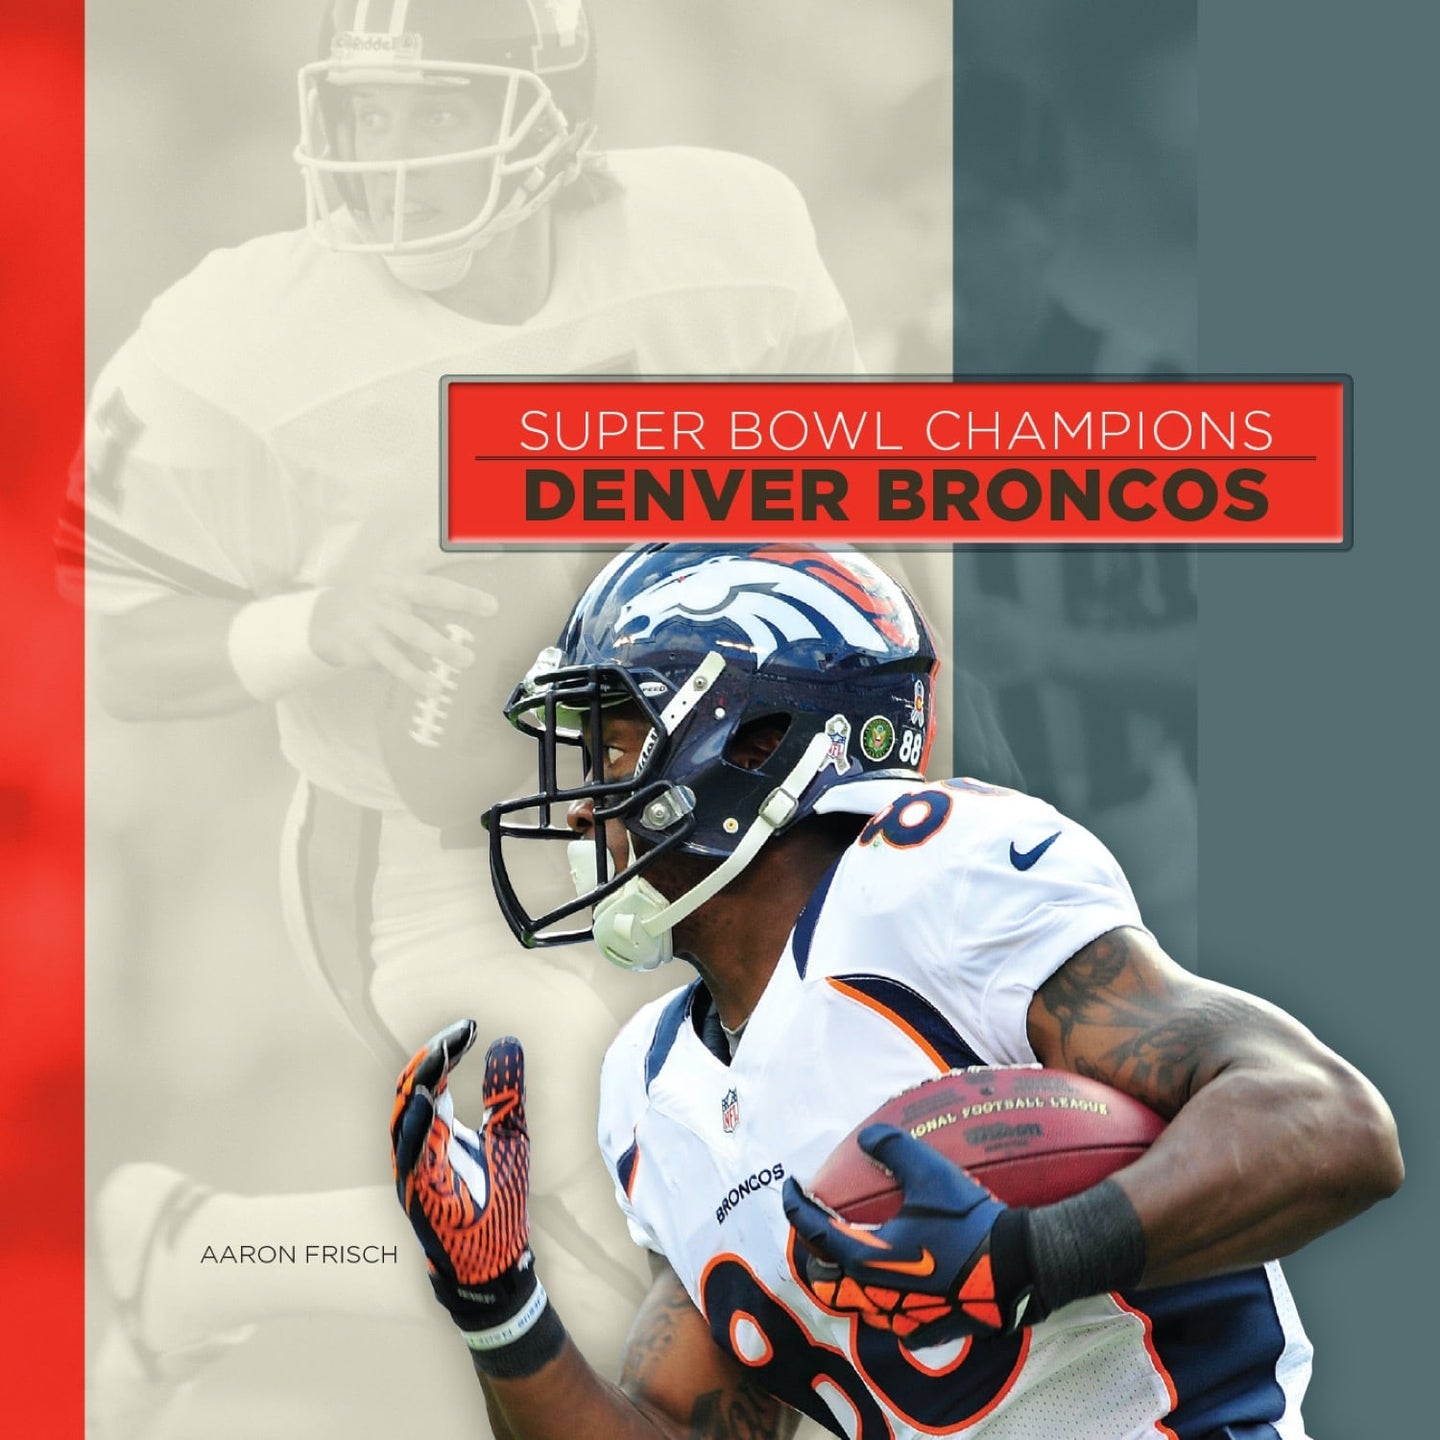 Super Bowl Champions: Denver Broncos